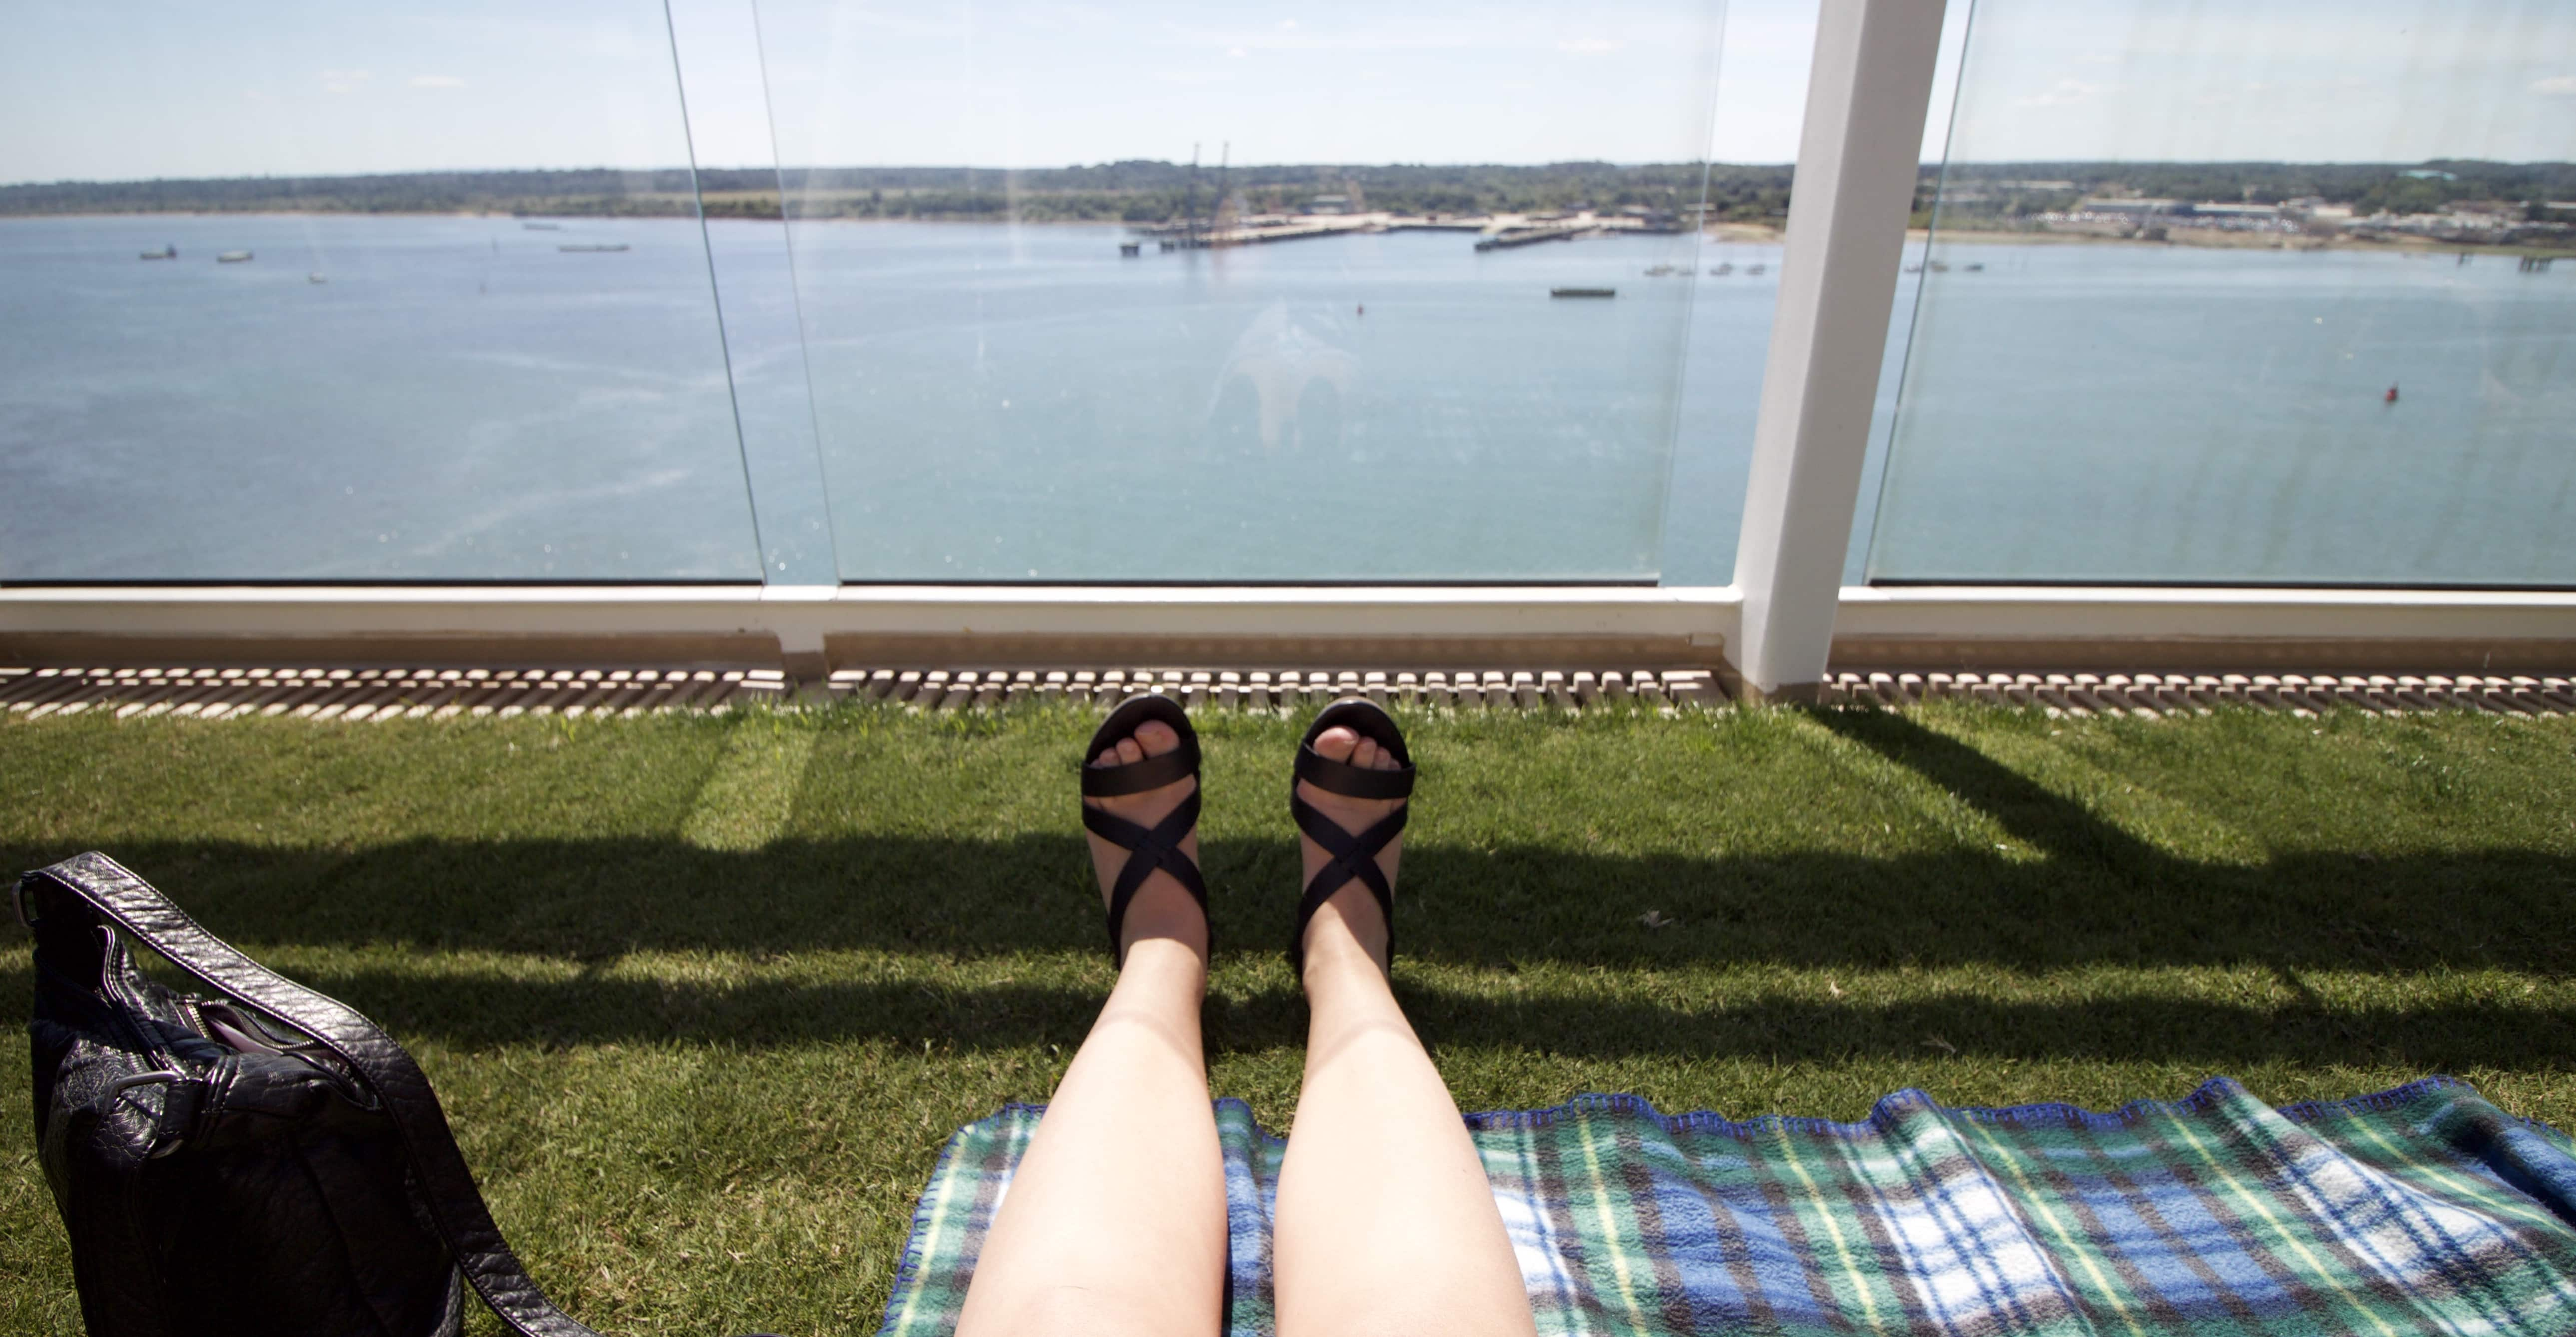 Celebrity Eclipse - Lawn Club grass picnic blanket feet sandals view